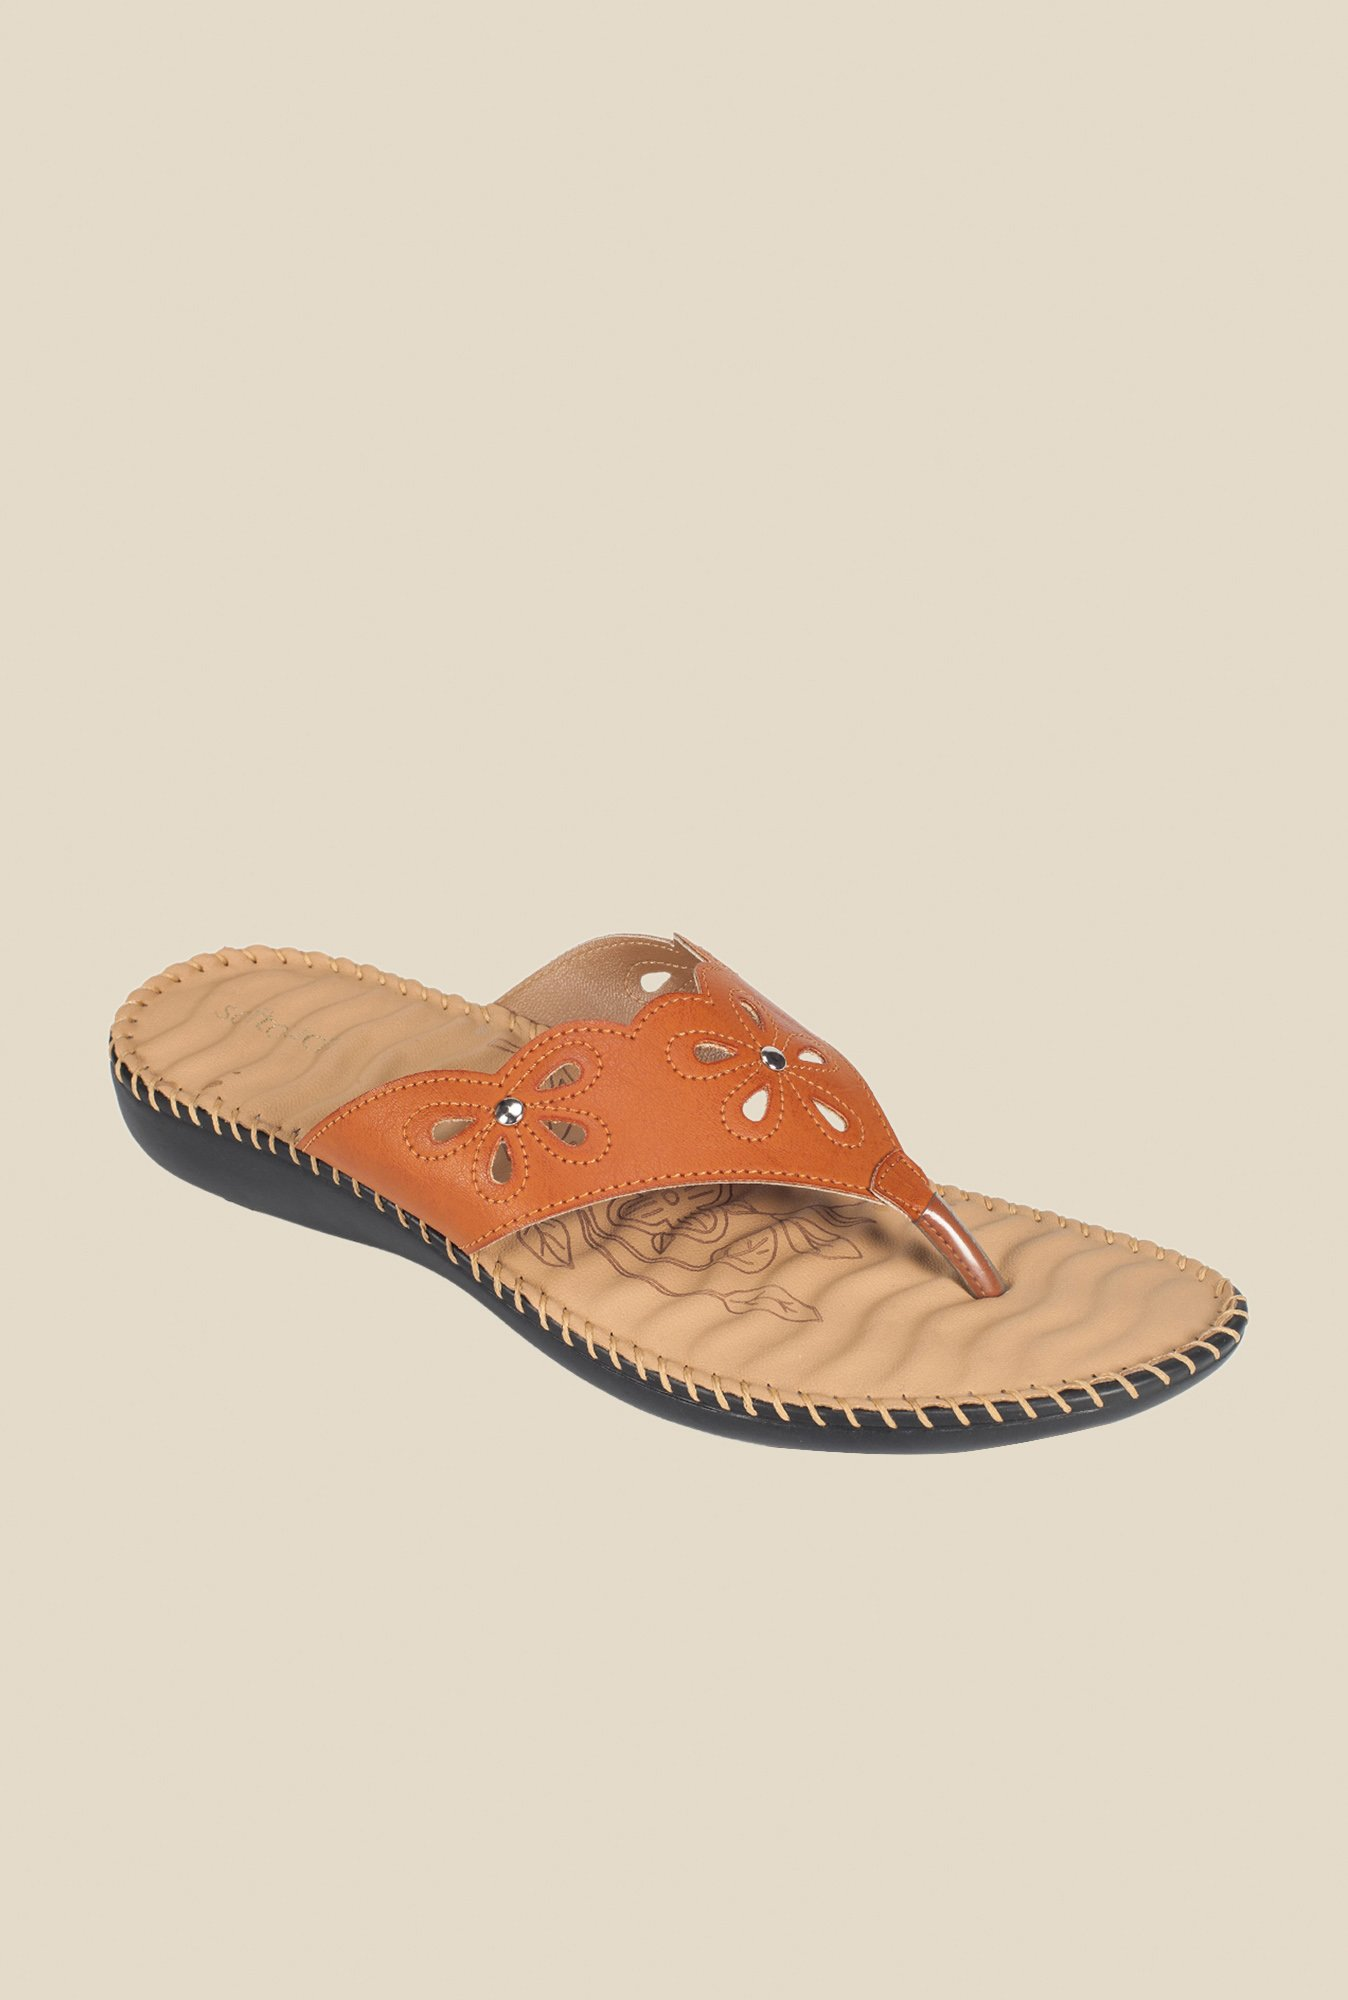 Khadim's Tan Thong Sandals